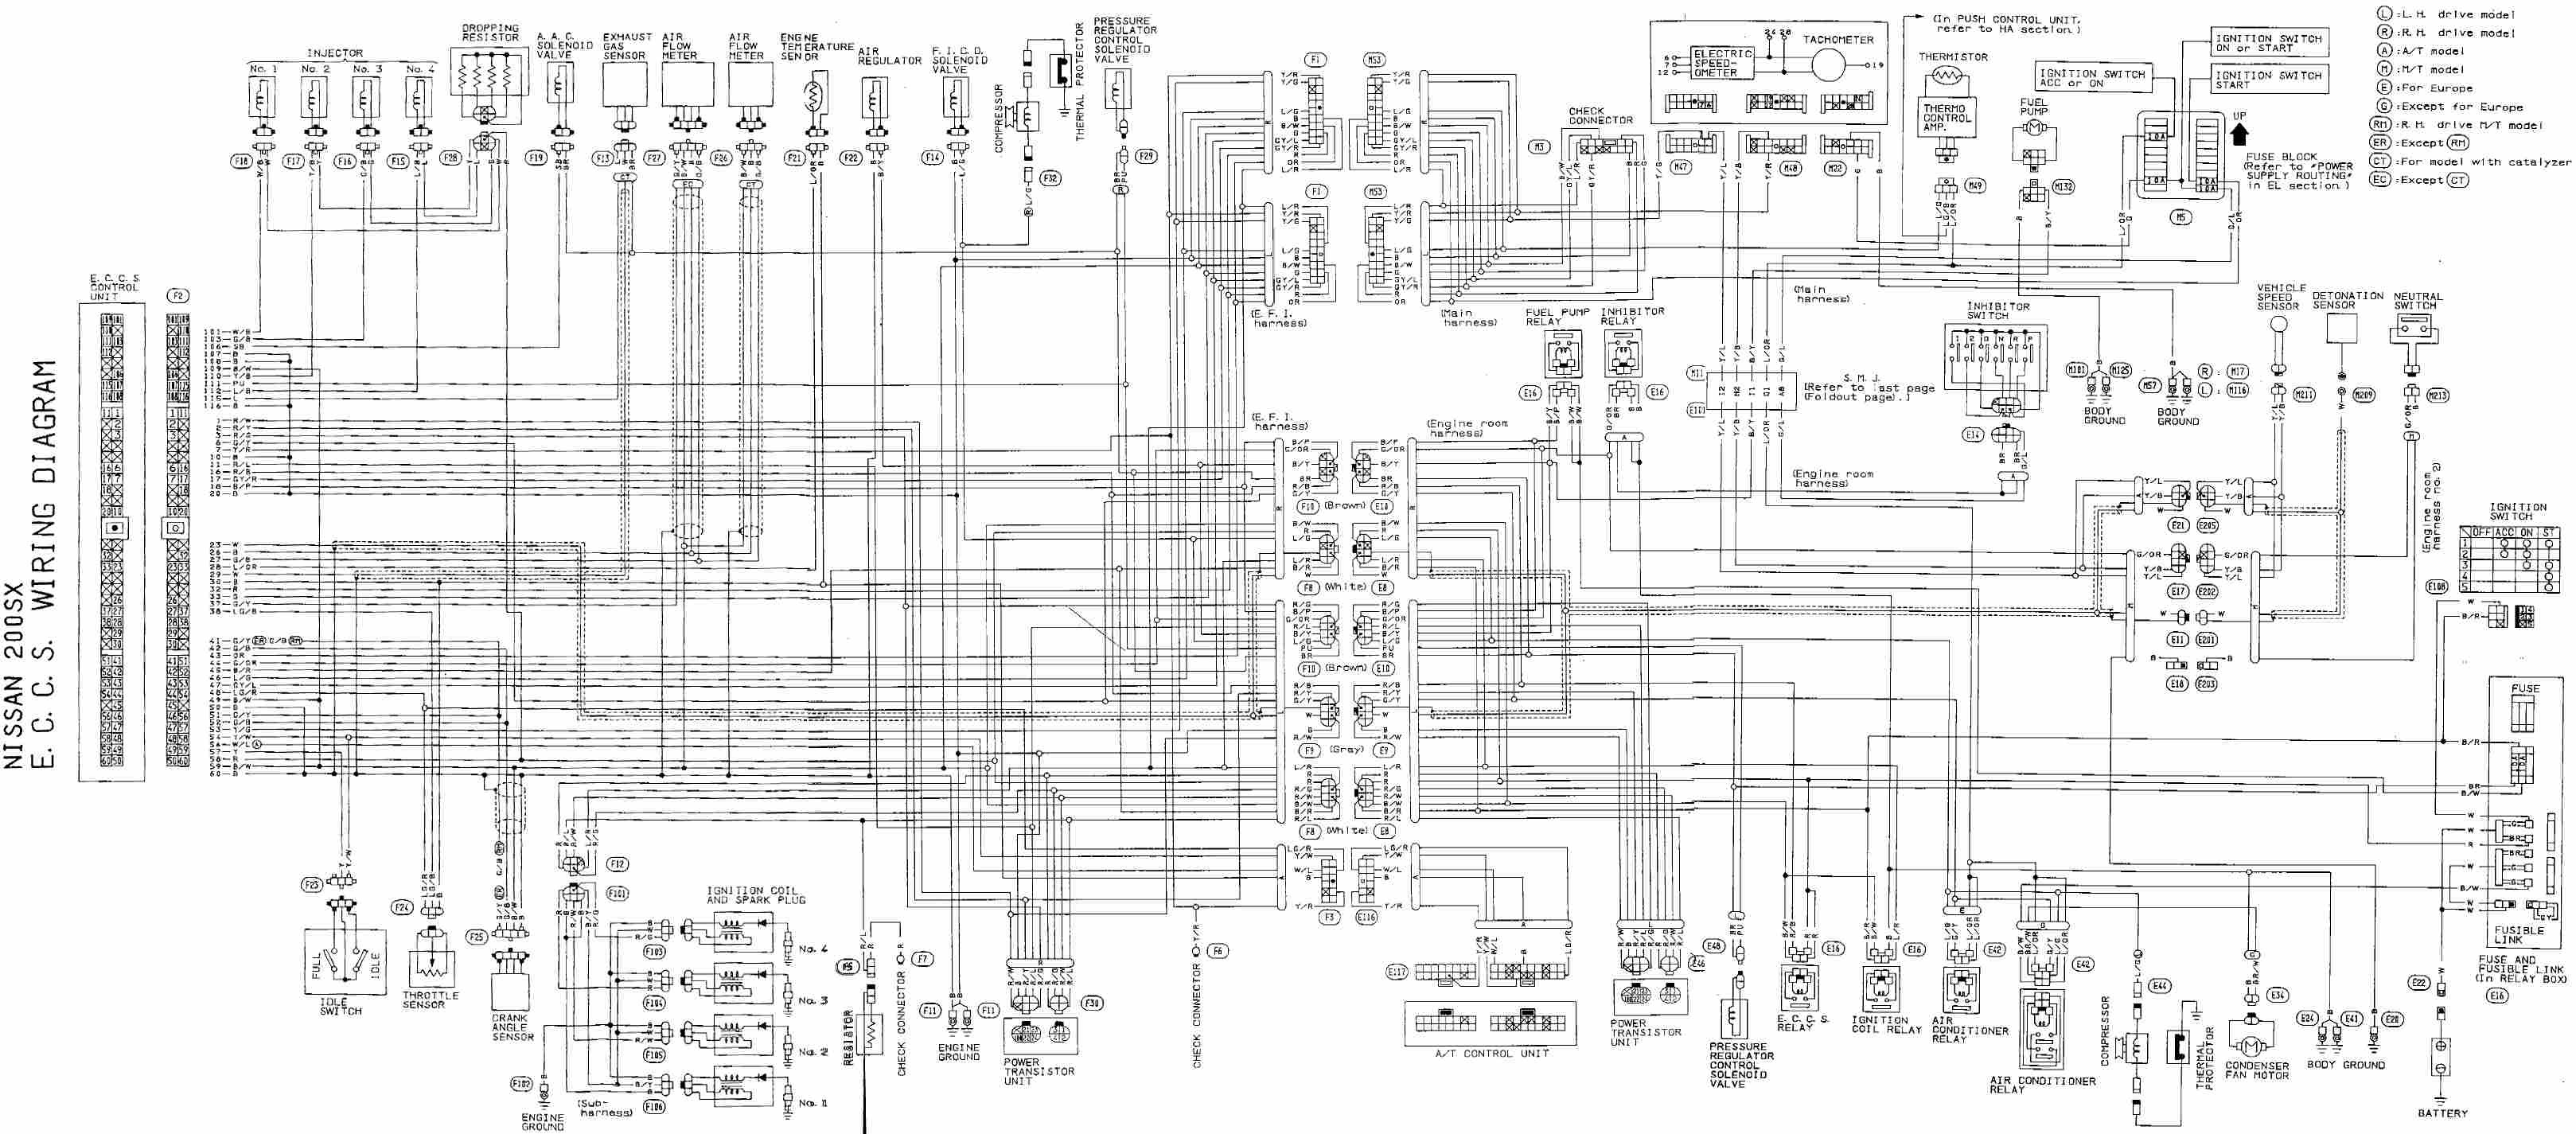 350z Engine Diagram Great Description About 2003 Nissan 350z Engine with Captivating Of 350z Engine Diagram Diagram Crossover Ads Wiring 336is Custom Project Wiring Diagram •